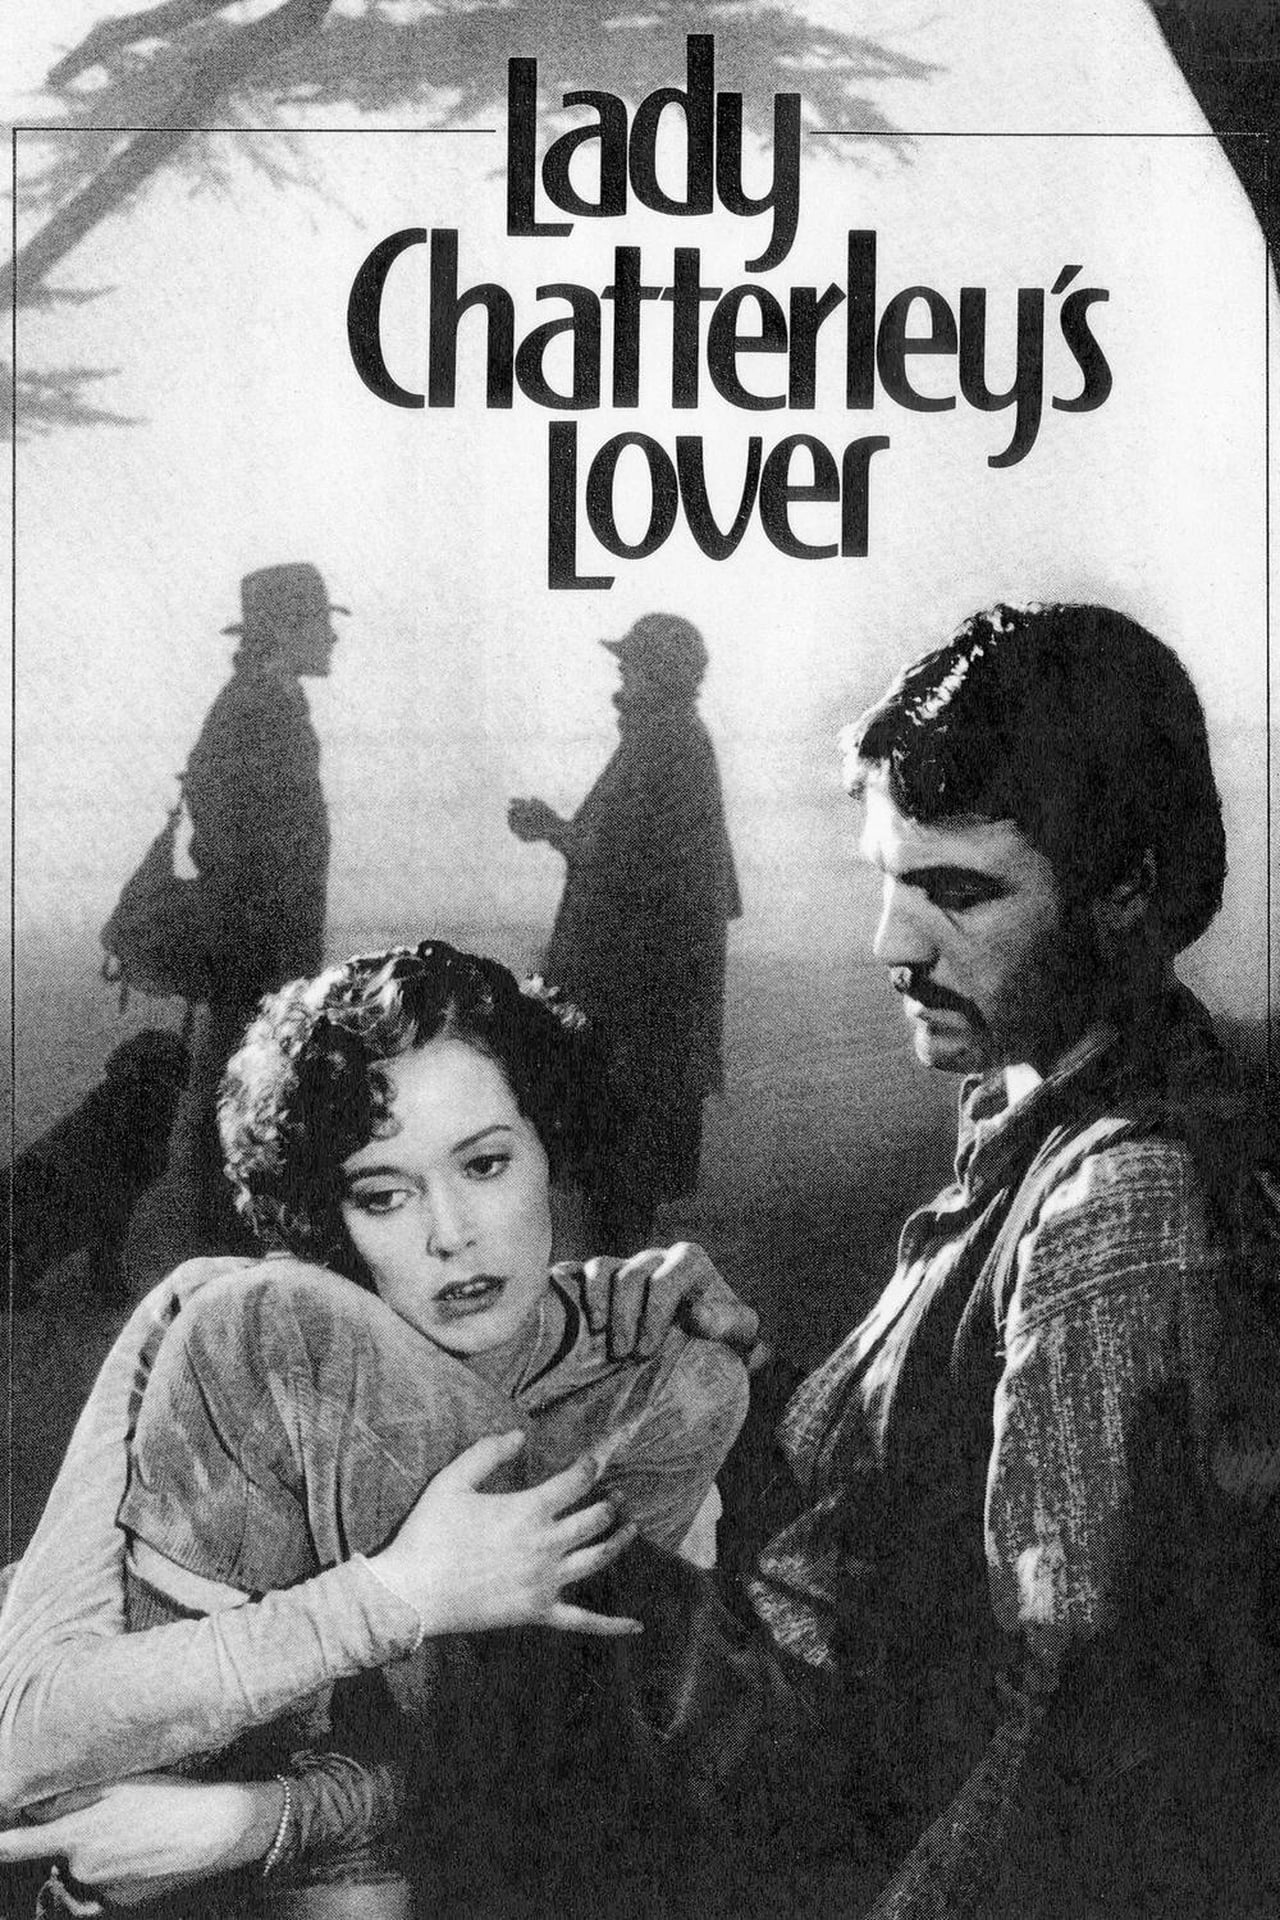 lady chatterleys lover dvdrip xvid by wingtip Lady chatterley 2006 magnet link,lady chatterley 2006 download the bittorrent lady chatterley's lover lady chatterley german 2006 s e dvdrip xvidrar 136.